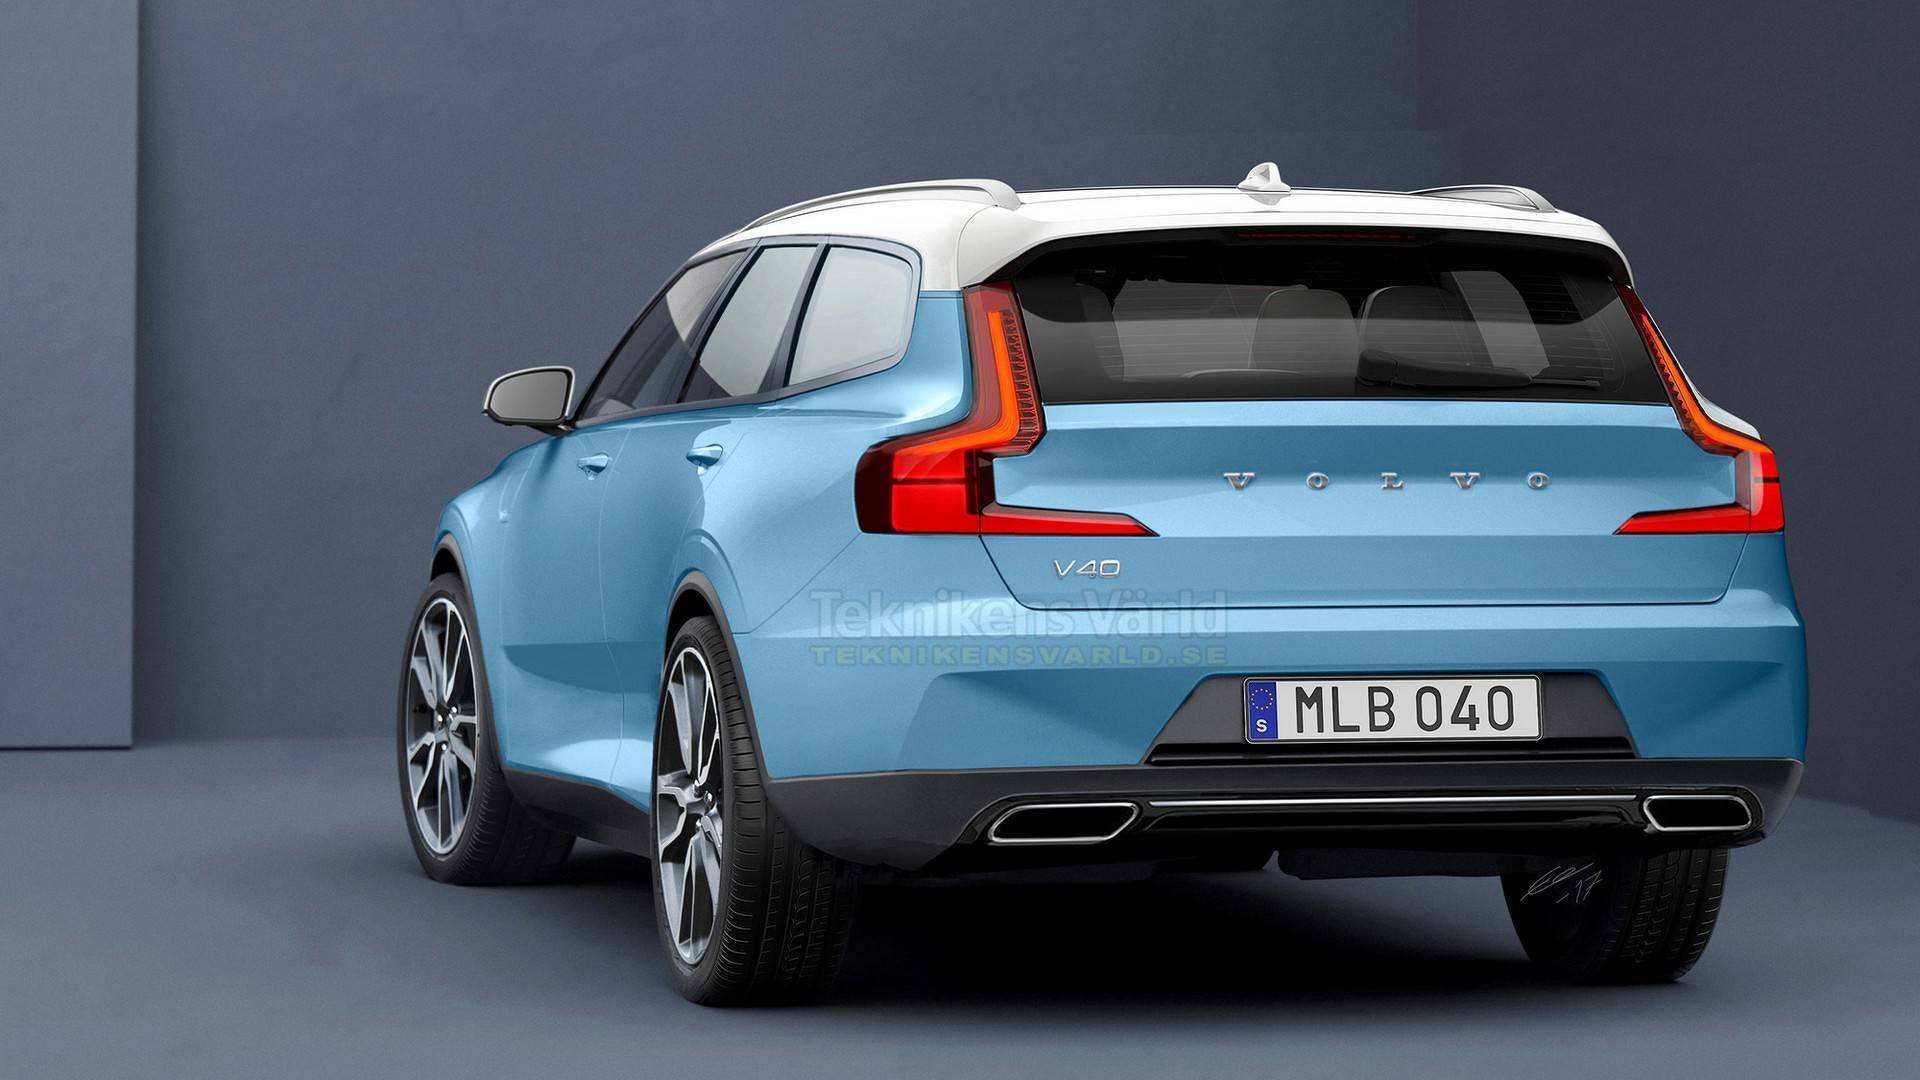 40 Concept of V40 Volvo 2020 Images with V40 Volvo 2020